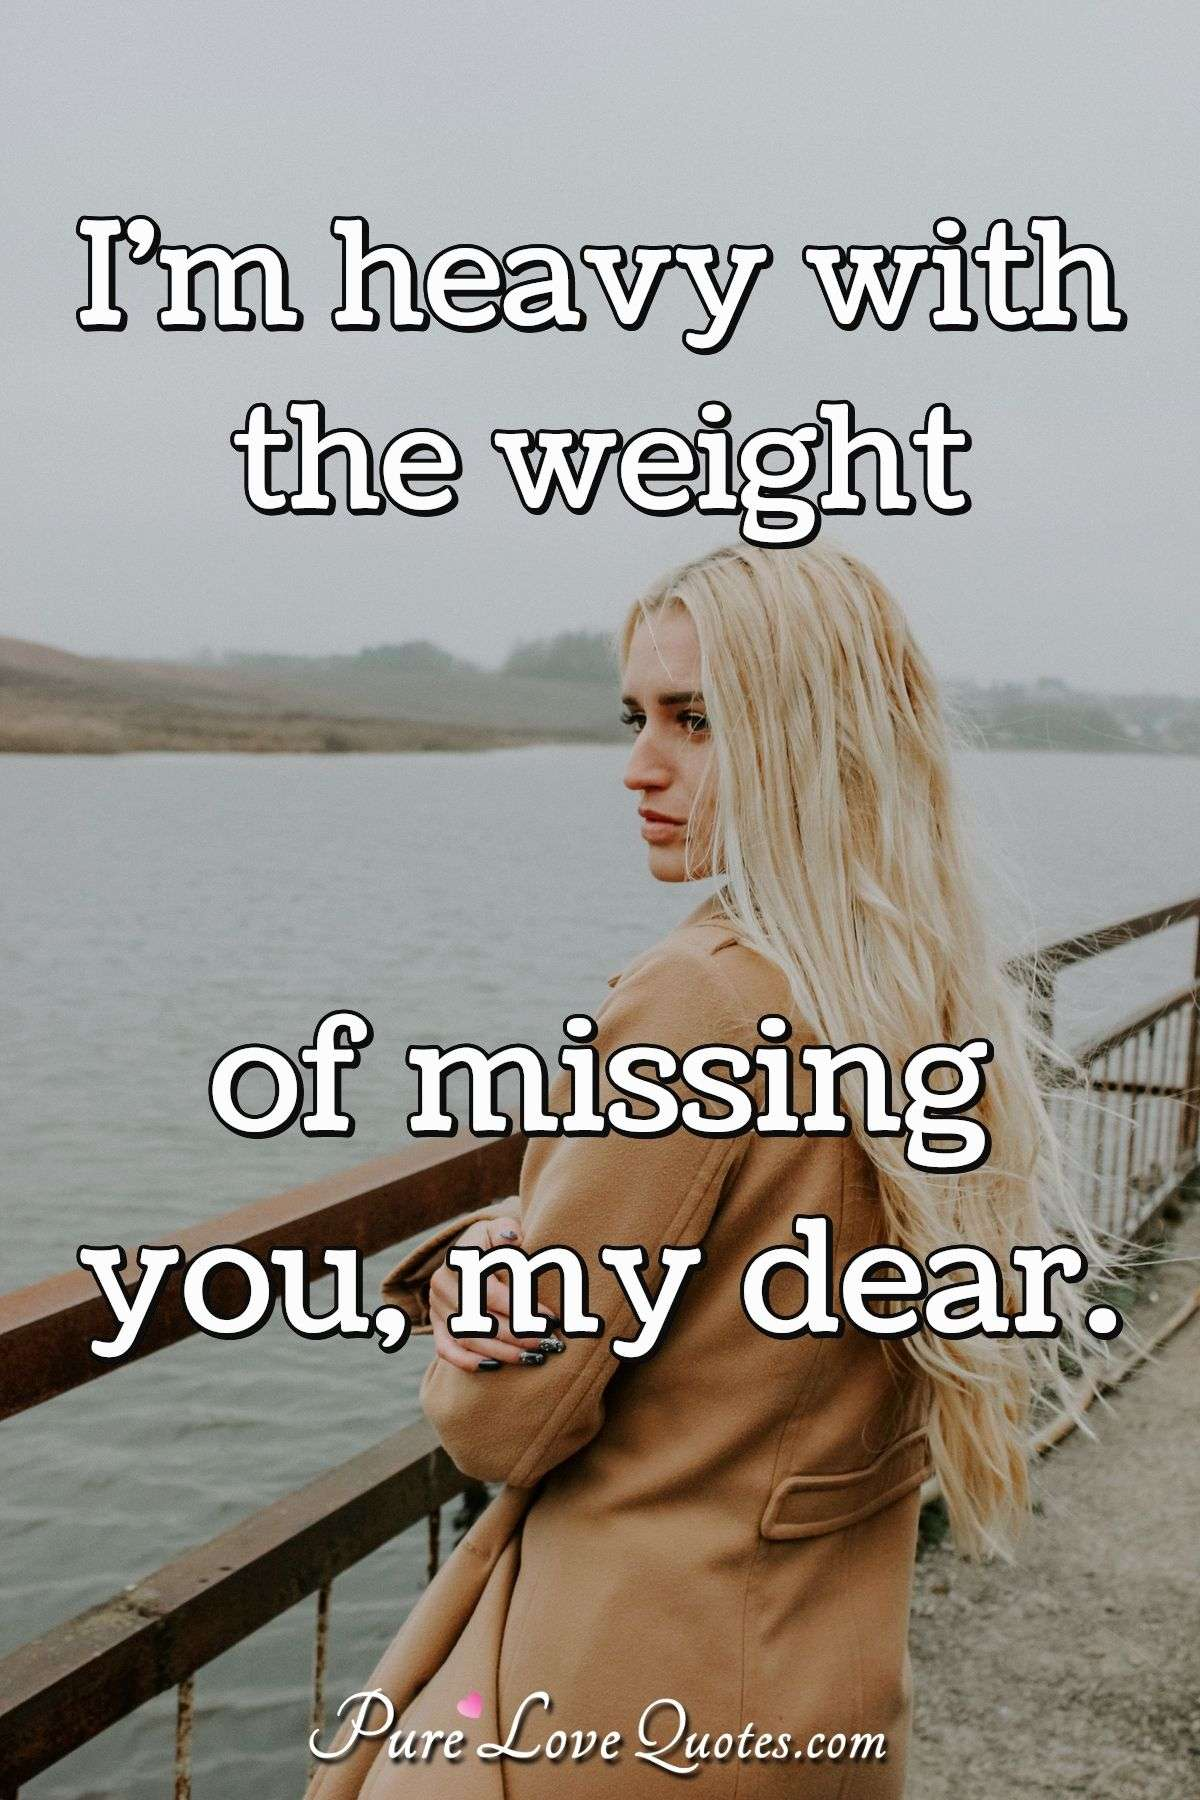 I'm heavy with the weight of missing you, my dear. - Anonymous